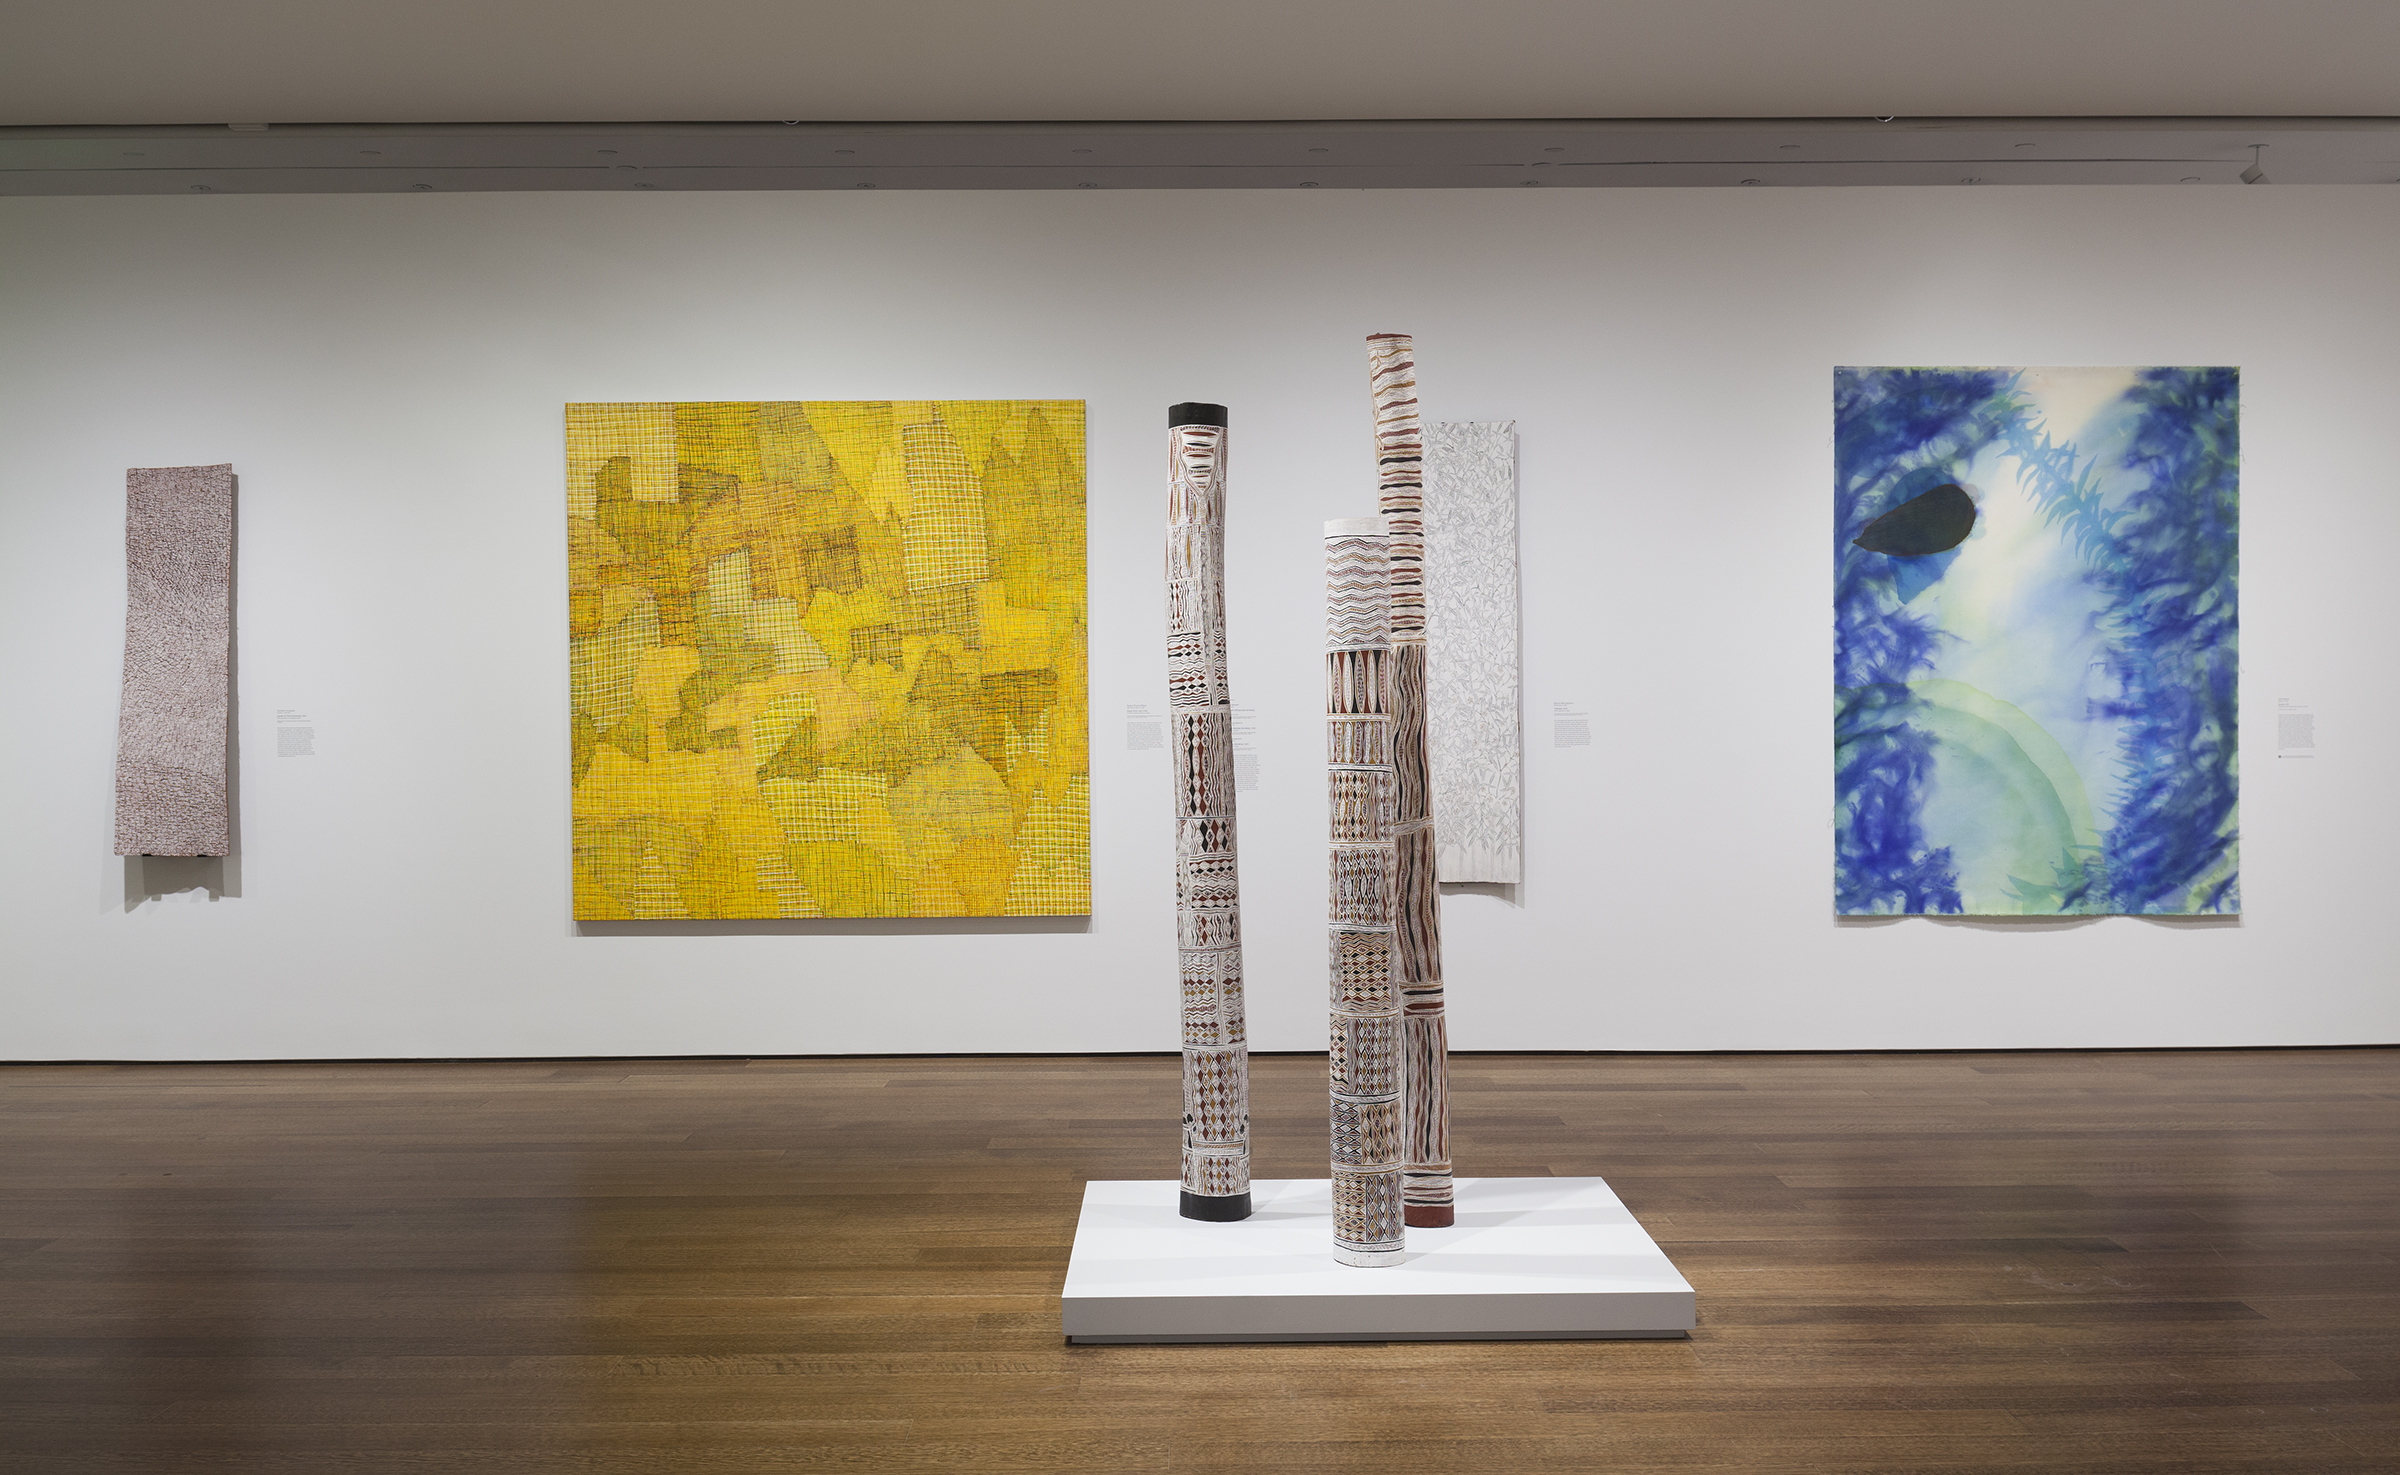 Gallery with three tall carved bark sculptures in the center.  Hanging on the wall in the background are four colorful abstract paintings by Australian indigenous artists.